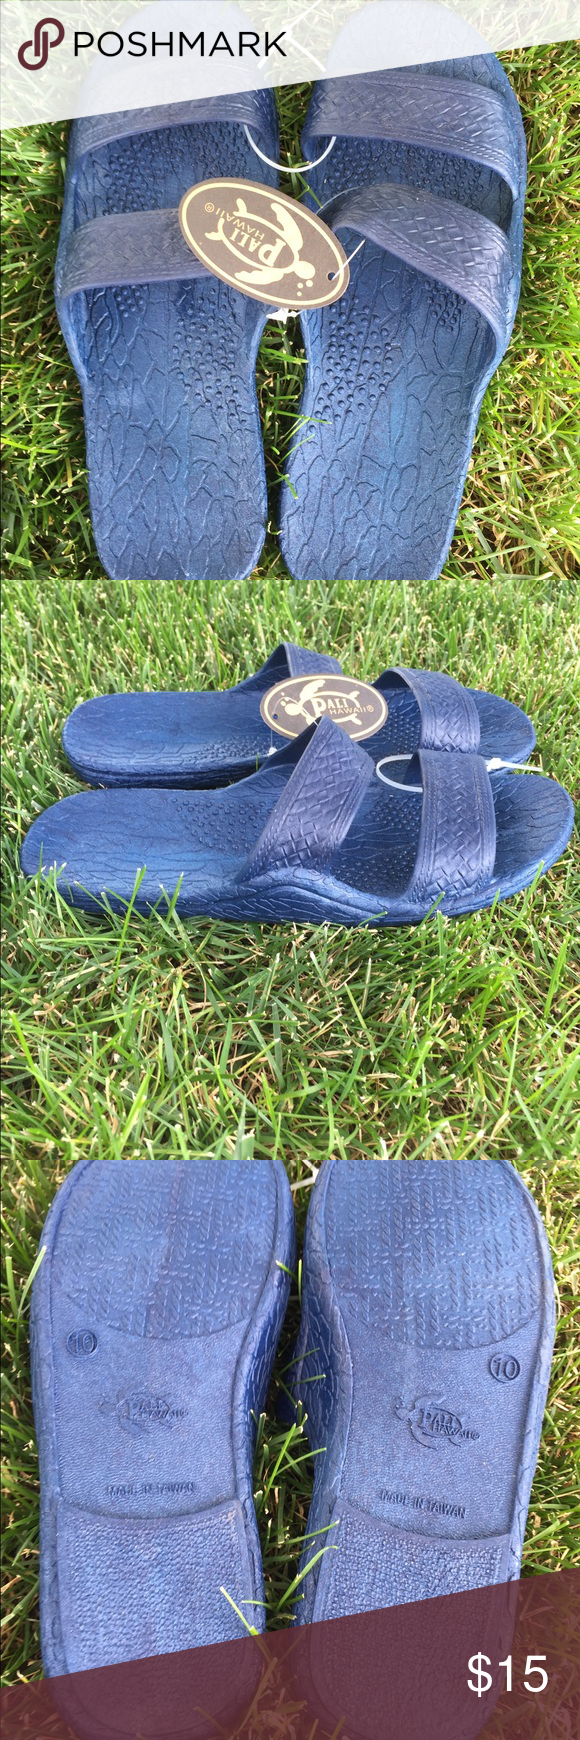 5dae24355ec NWT Authentic Pali Hawaii Jesus Sandals Navy Blue BRAND NEW!! With tags  still on. These are the most comfortable shoes you will ever wear!